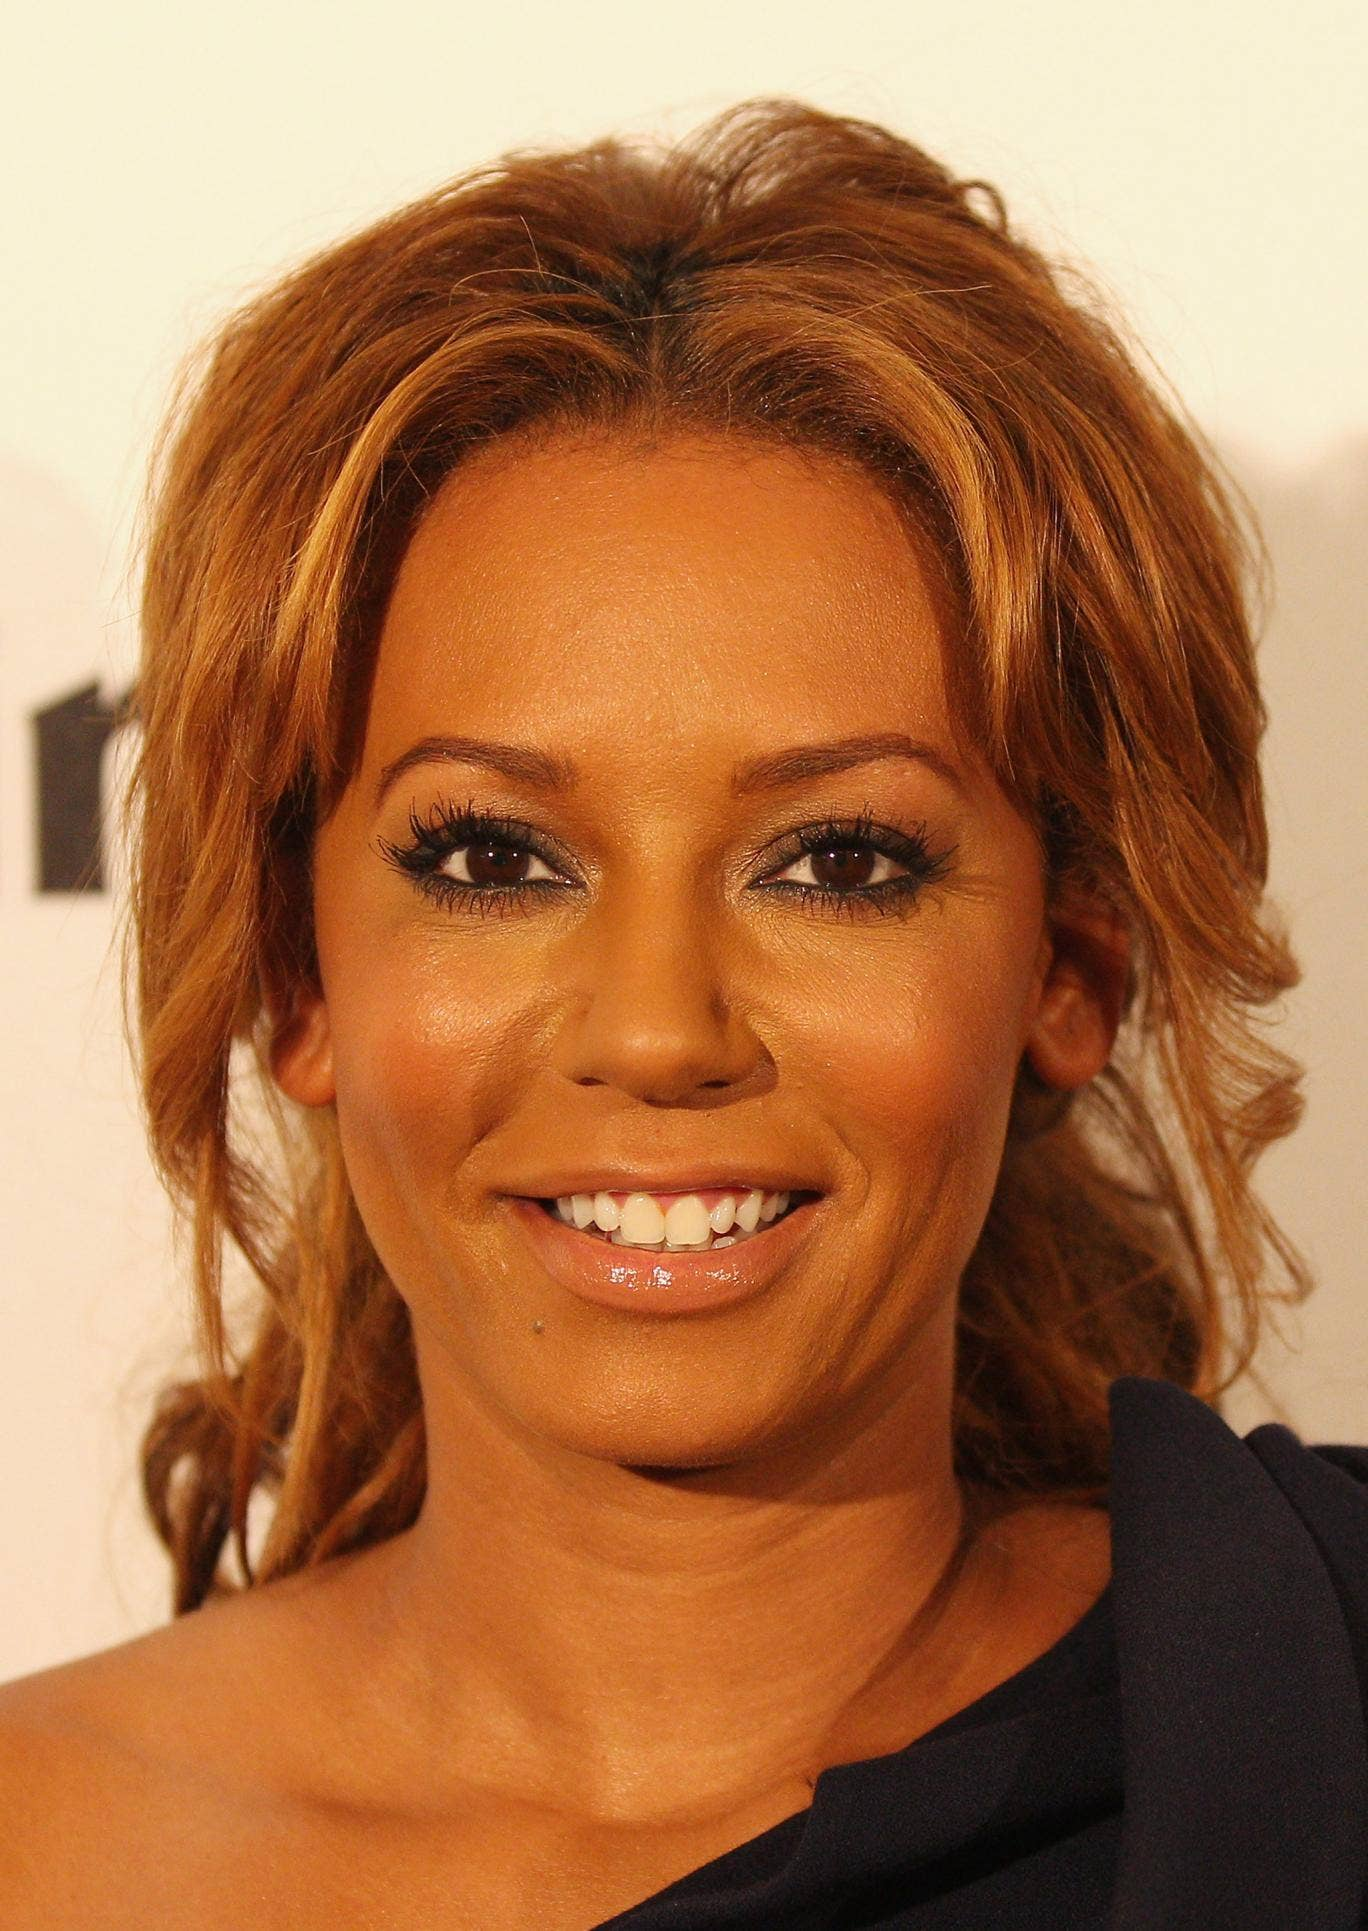 Mel B is confirmed as a judge for the next series of America's Got Talent